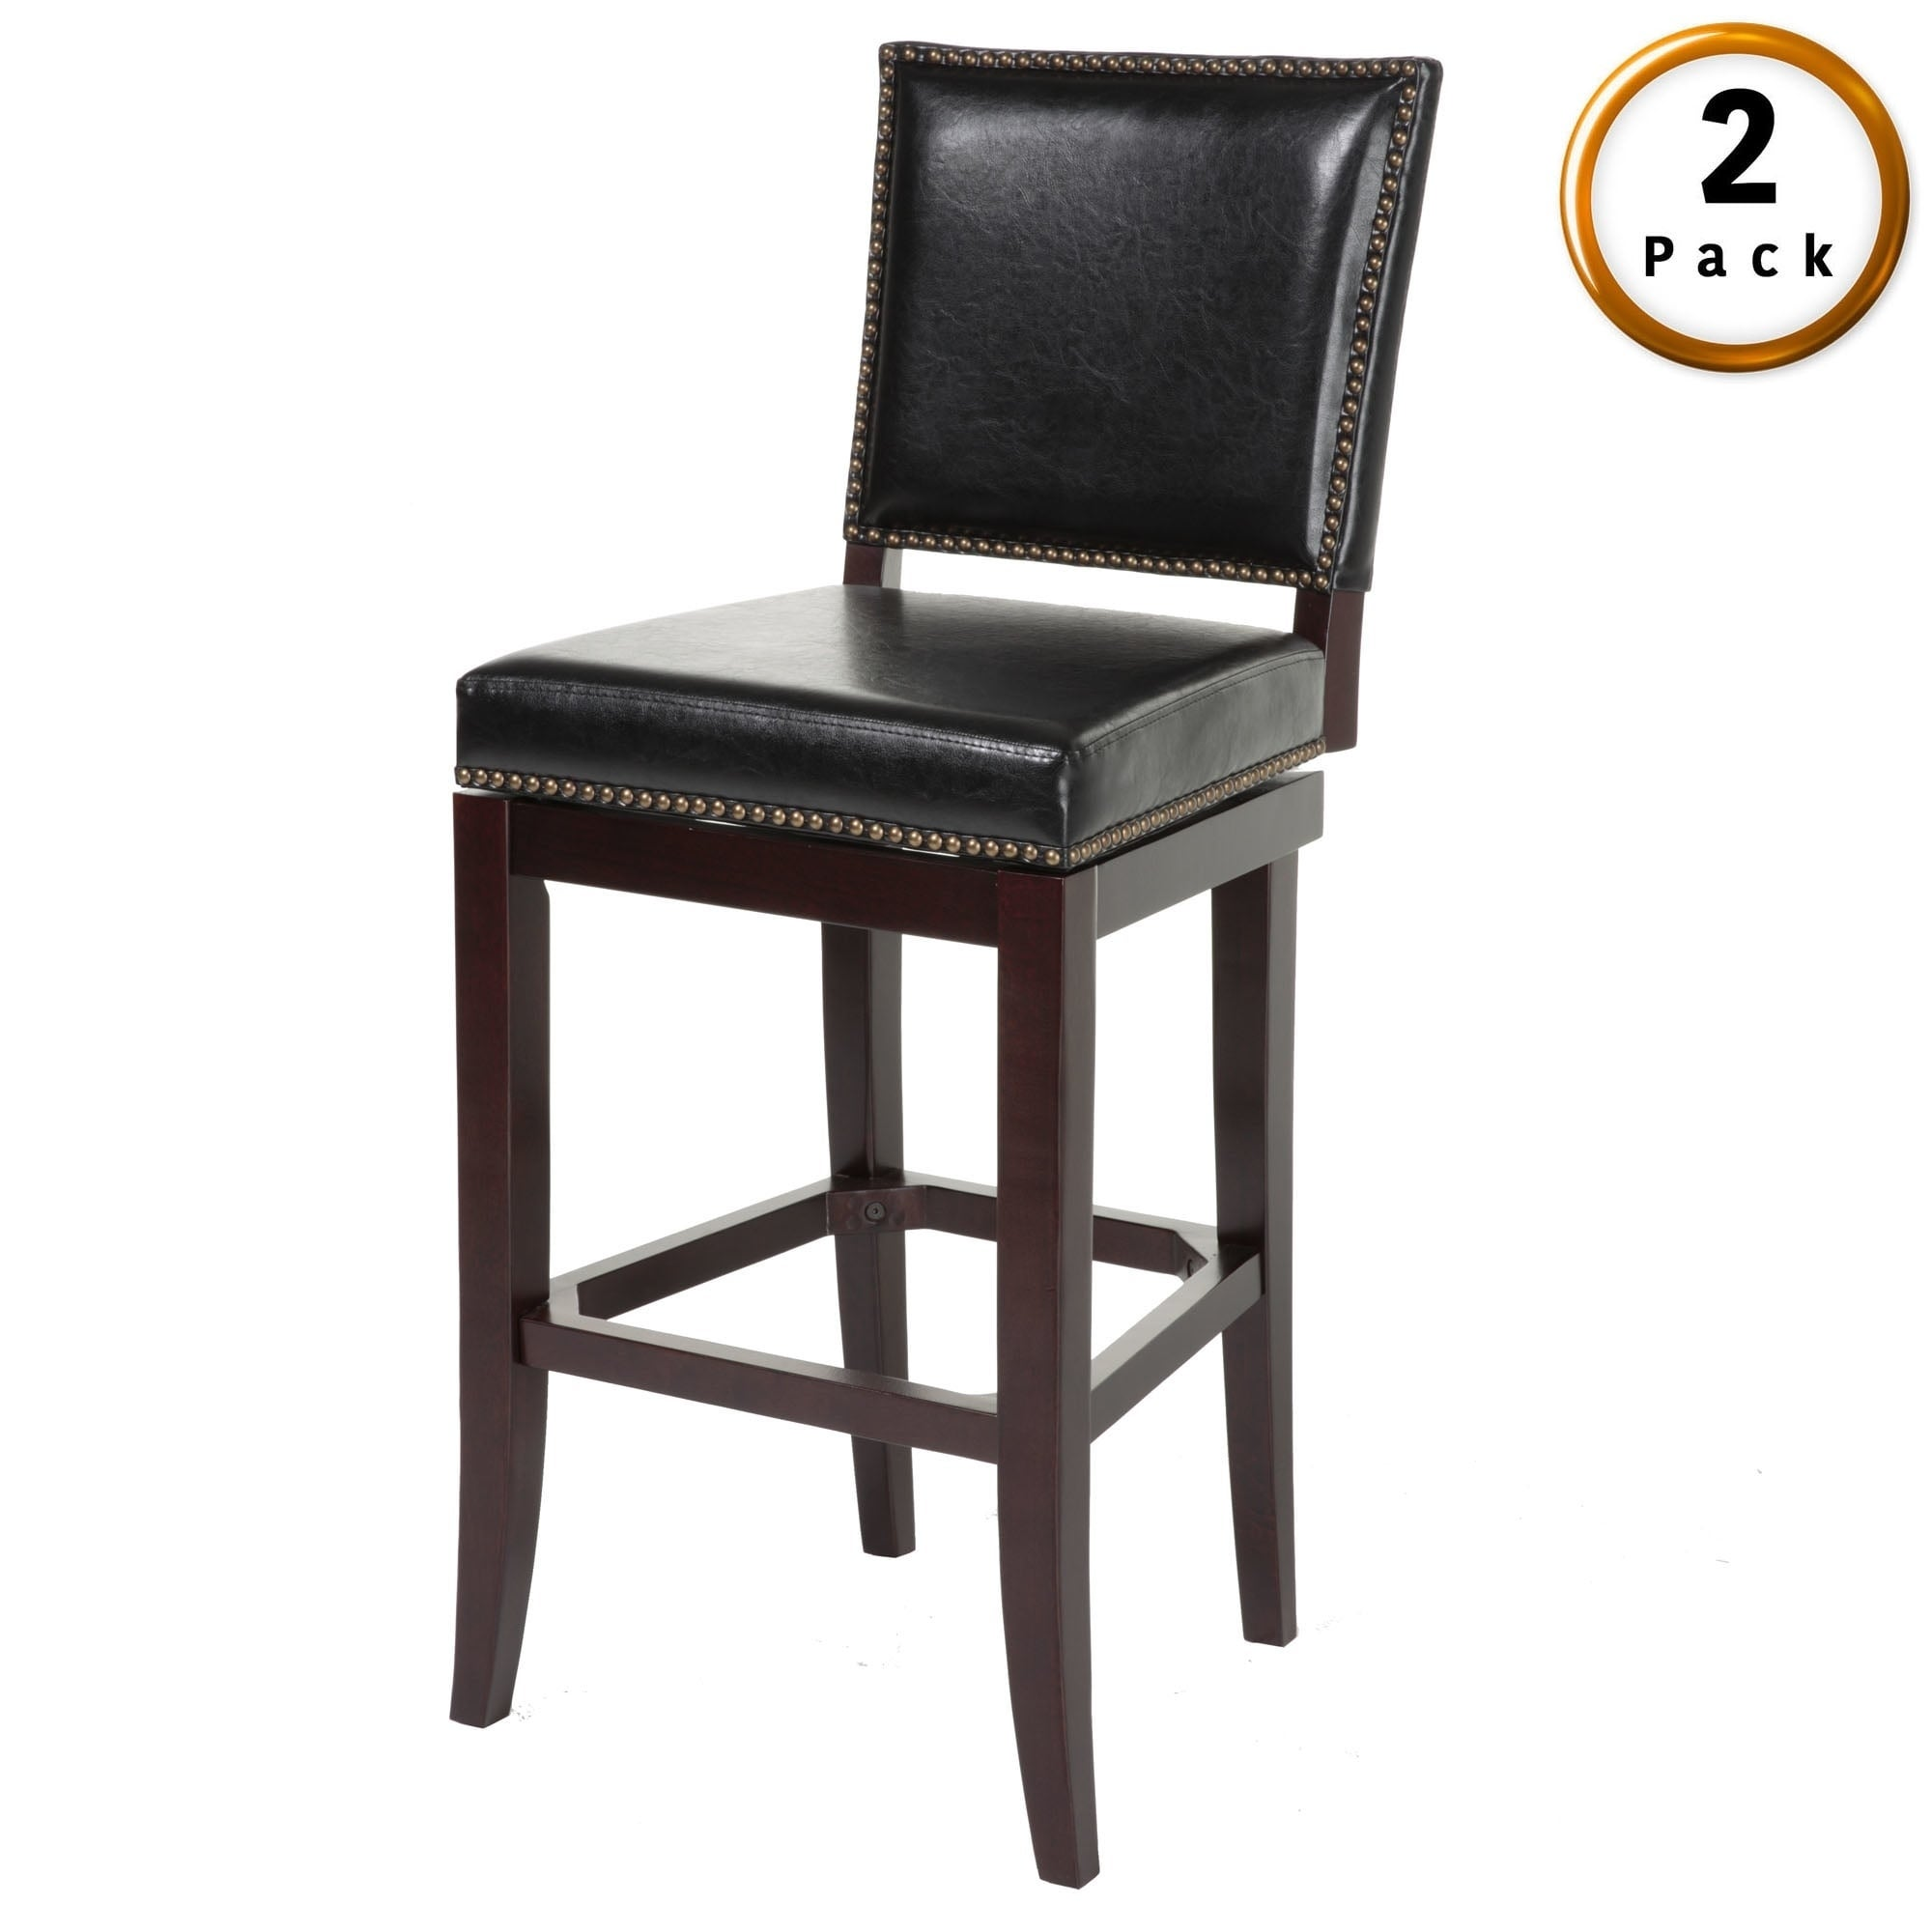 Shop sacramento wood bar or counter stool with padded swivel seat 2 pack on sale free shipping today overstock com 18125975